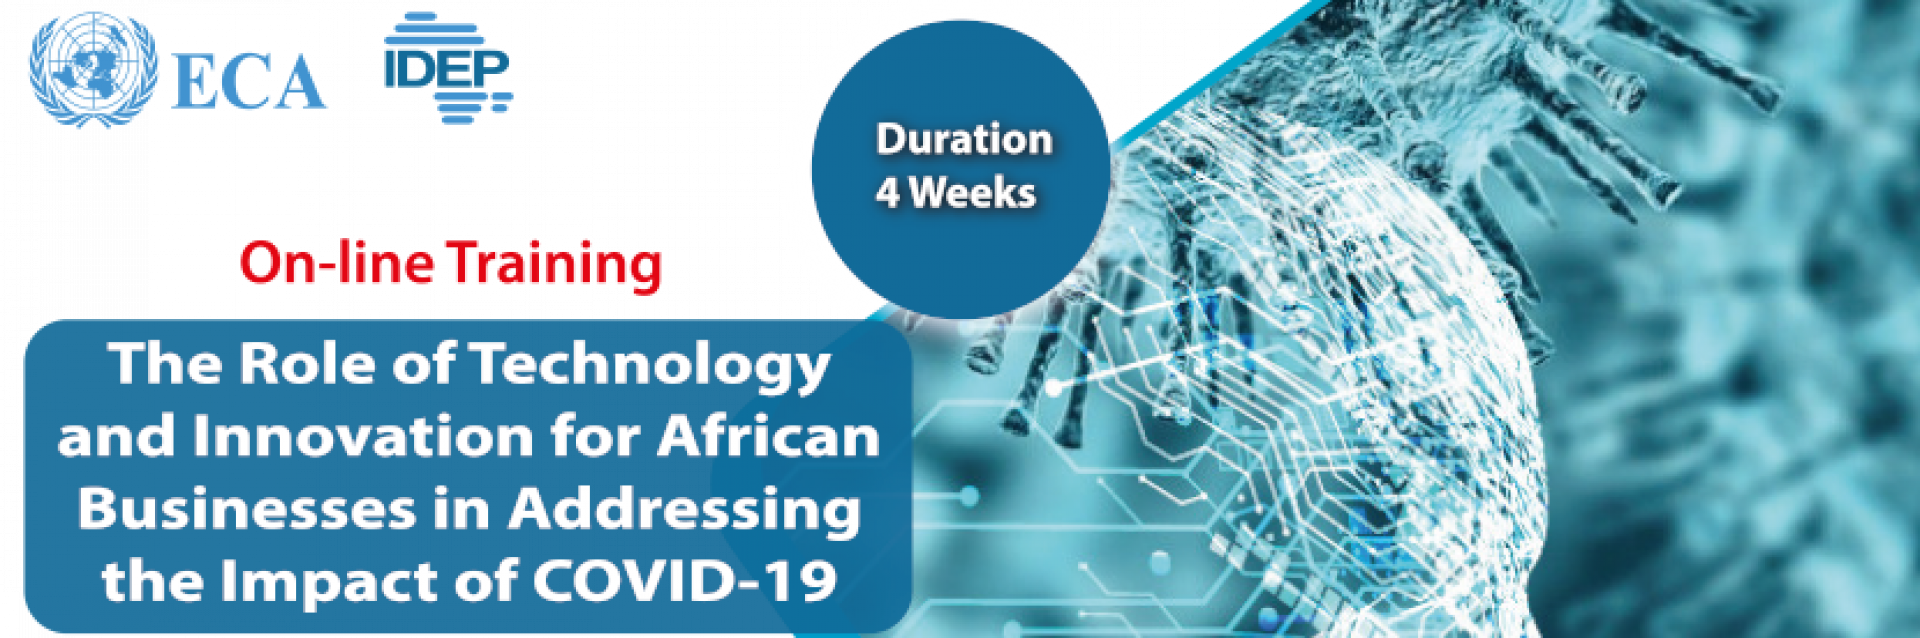 The Role of Technology and Innovation for African Businesses in Addressing the Impact of COVID-19